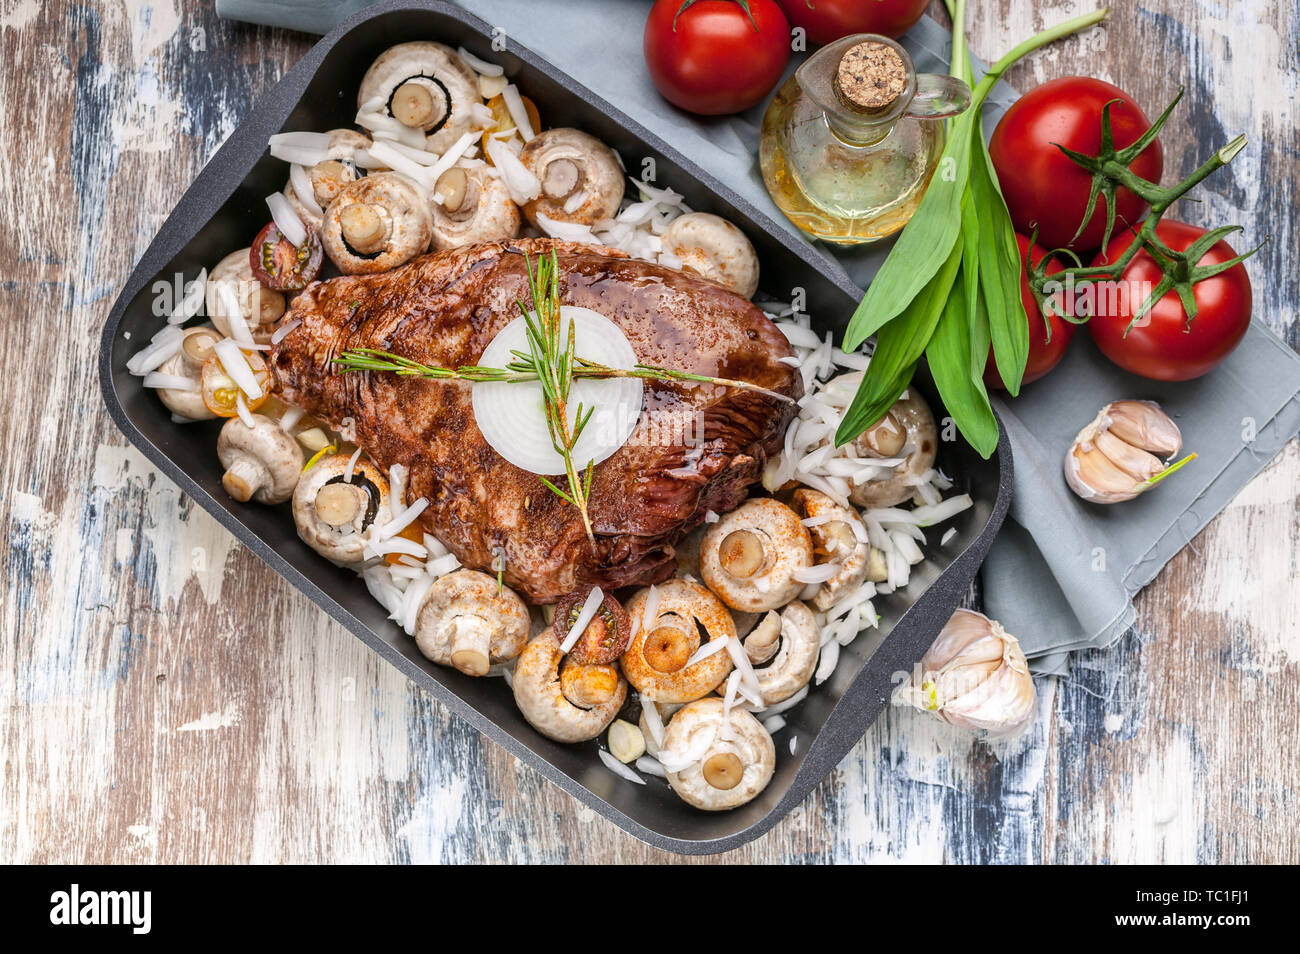 Marinated lamb with mushrooms, spices and herbs in a cast-iron mold on a wooden background. Tomatoes and olive oil. Halal meat and food. Top view - Stock Image